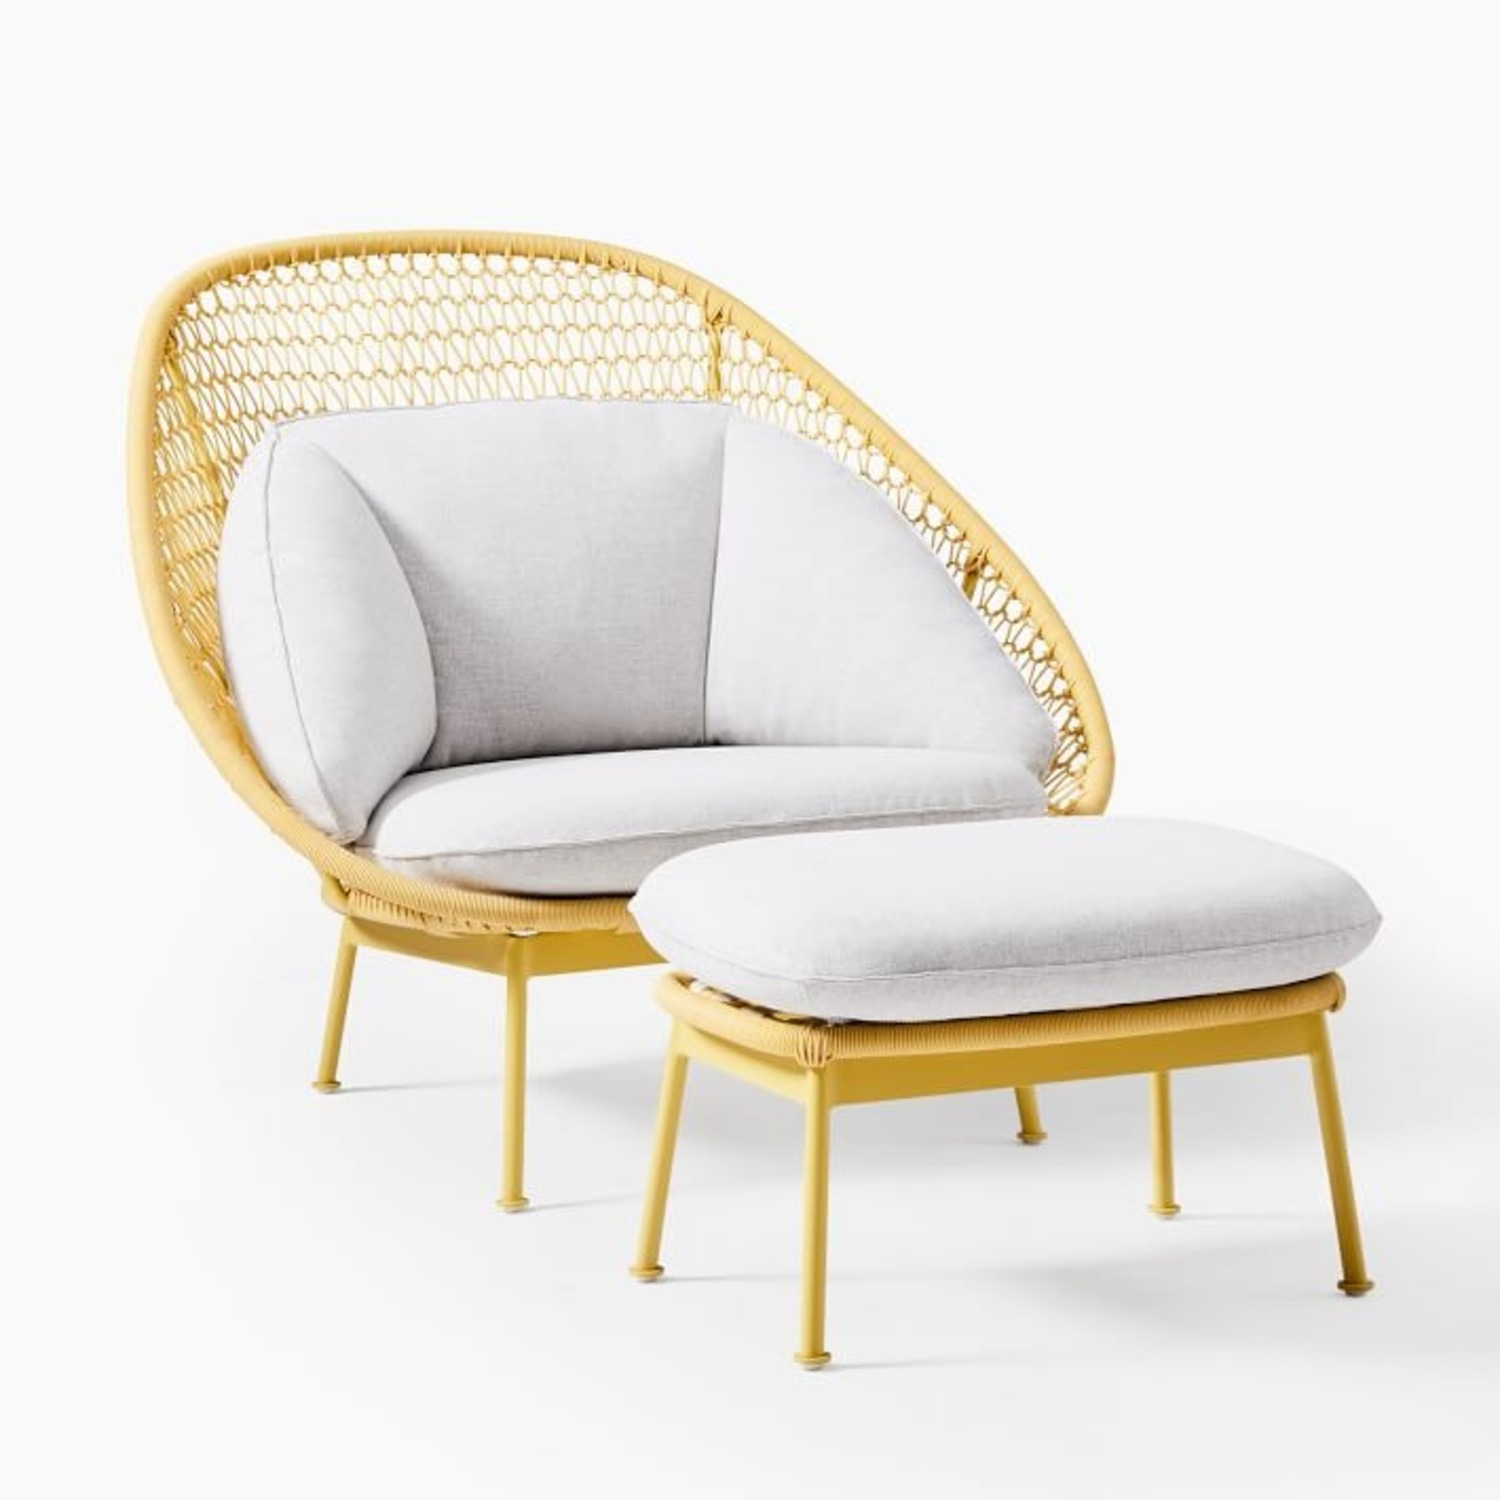 West Elm Nest Sunshine Lounge Chair + Ottoman - image-1